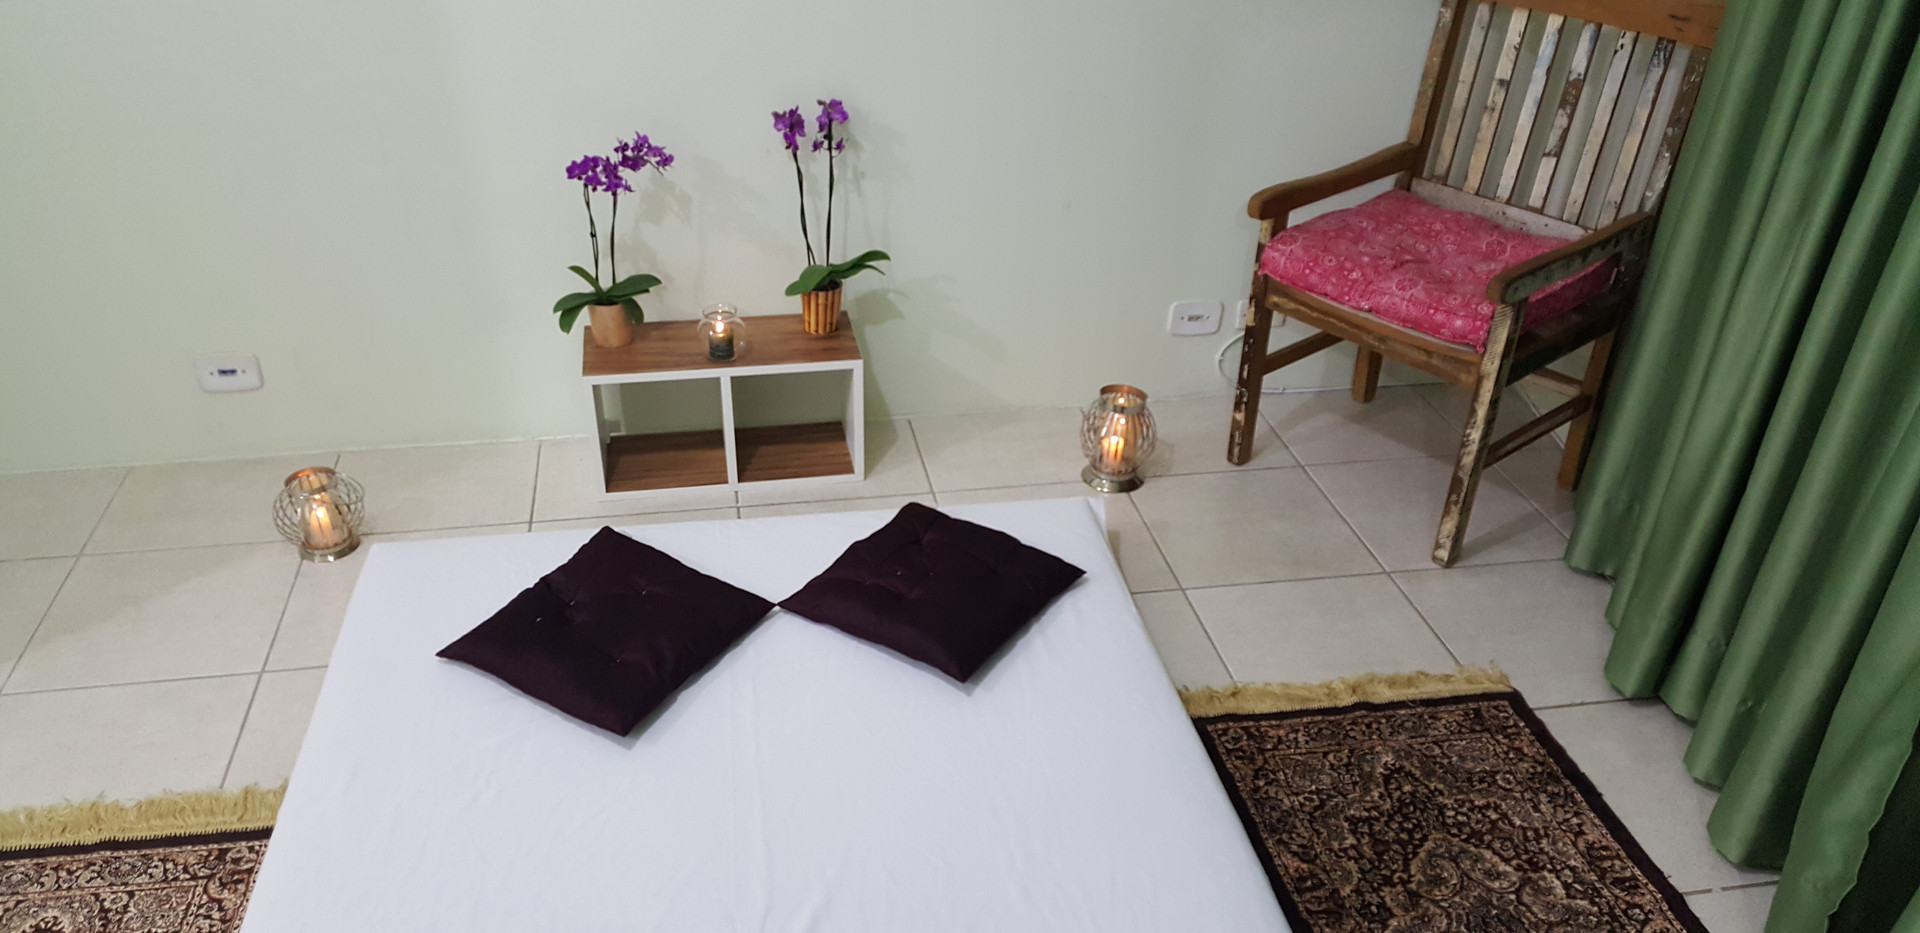 Kami Spa Massagem Massoterapia